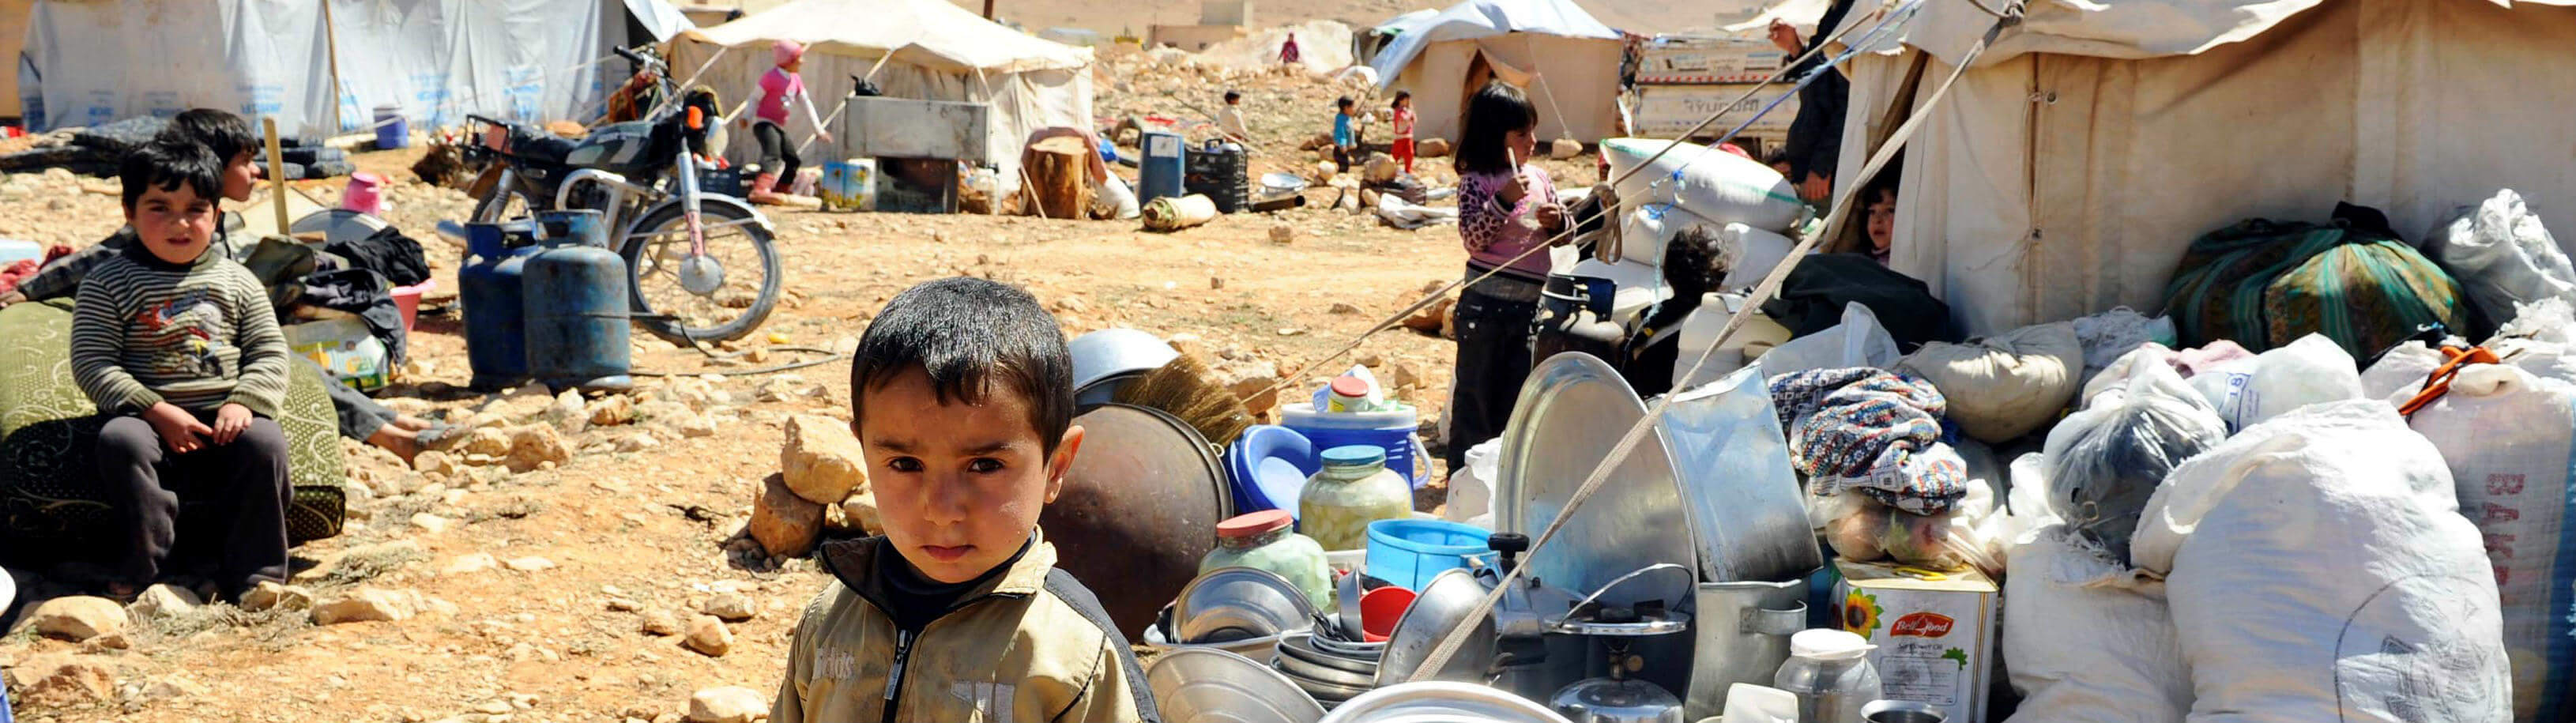 Syrian Relief